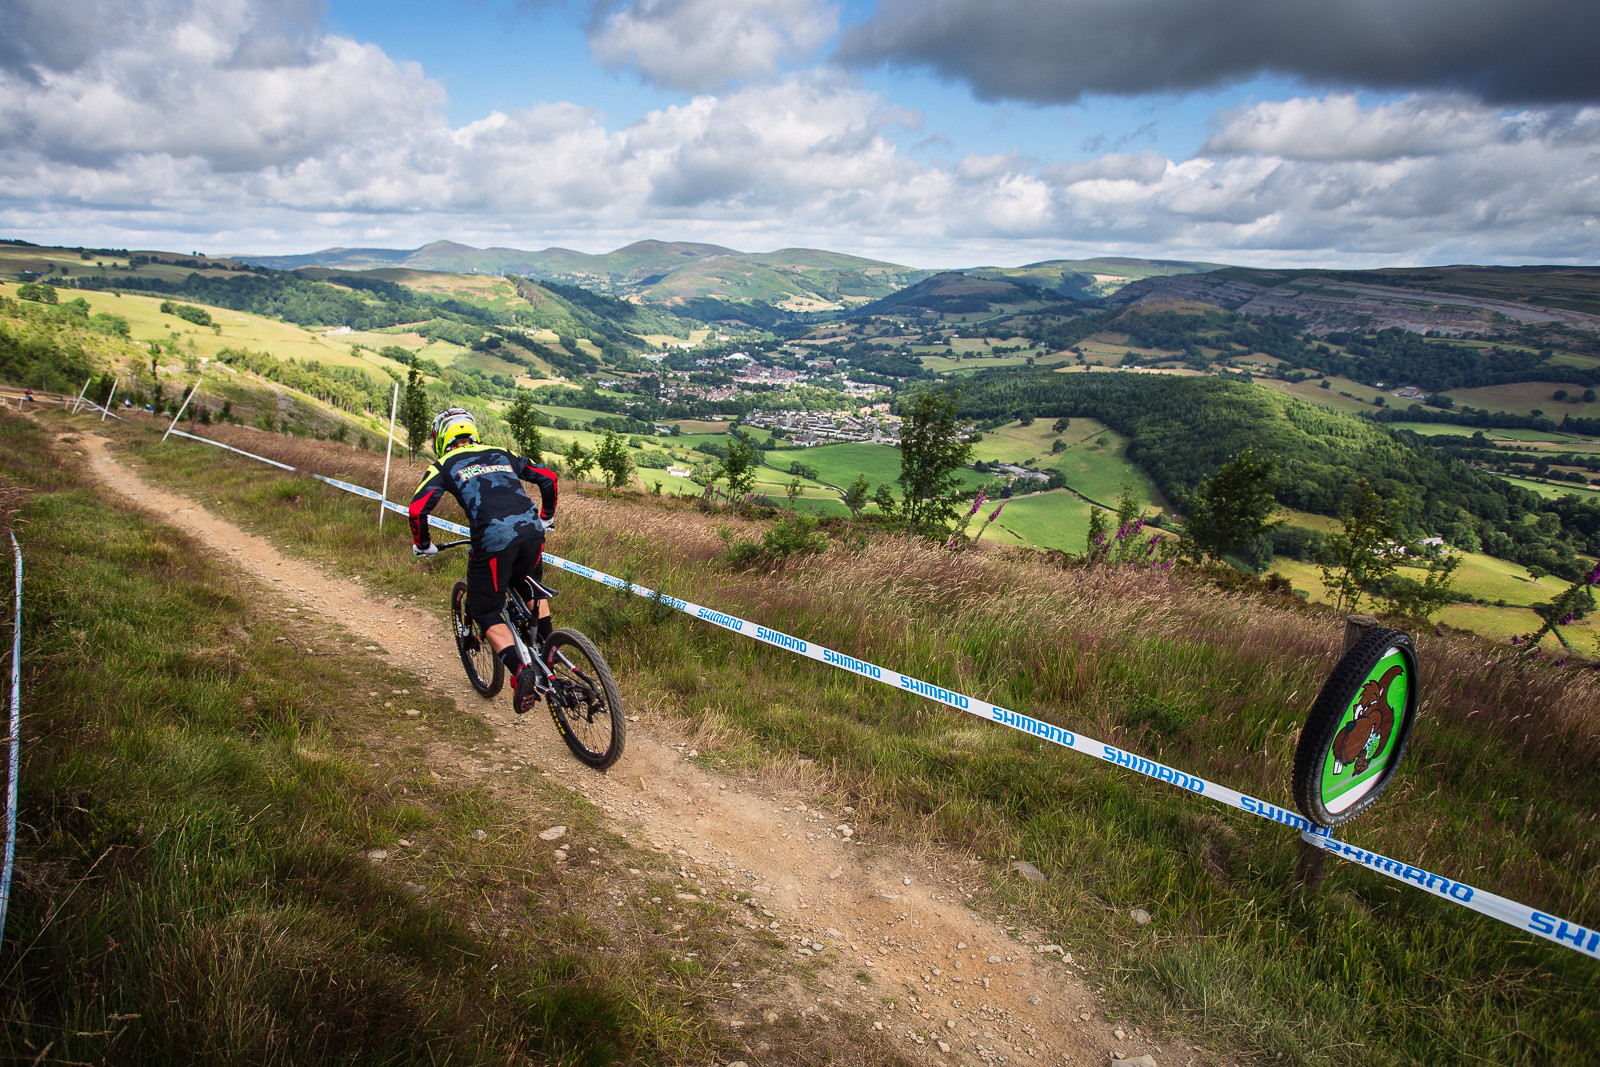 2015 British National Champs Downhill - 2015 British National Champs Downhill Photos - Mountain Biking Pictures - Vital MTB